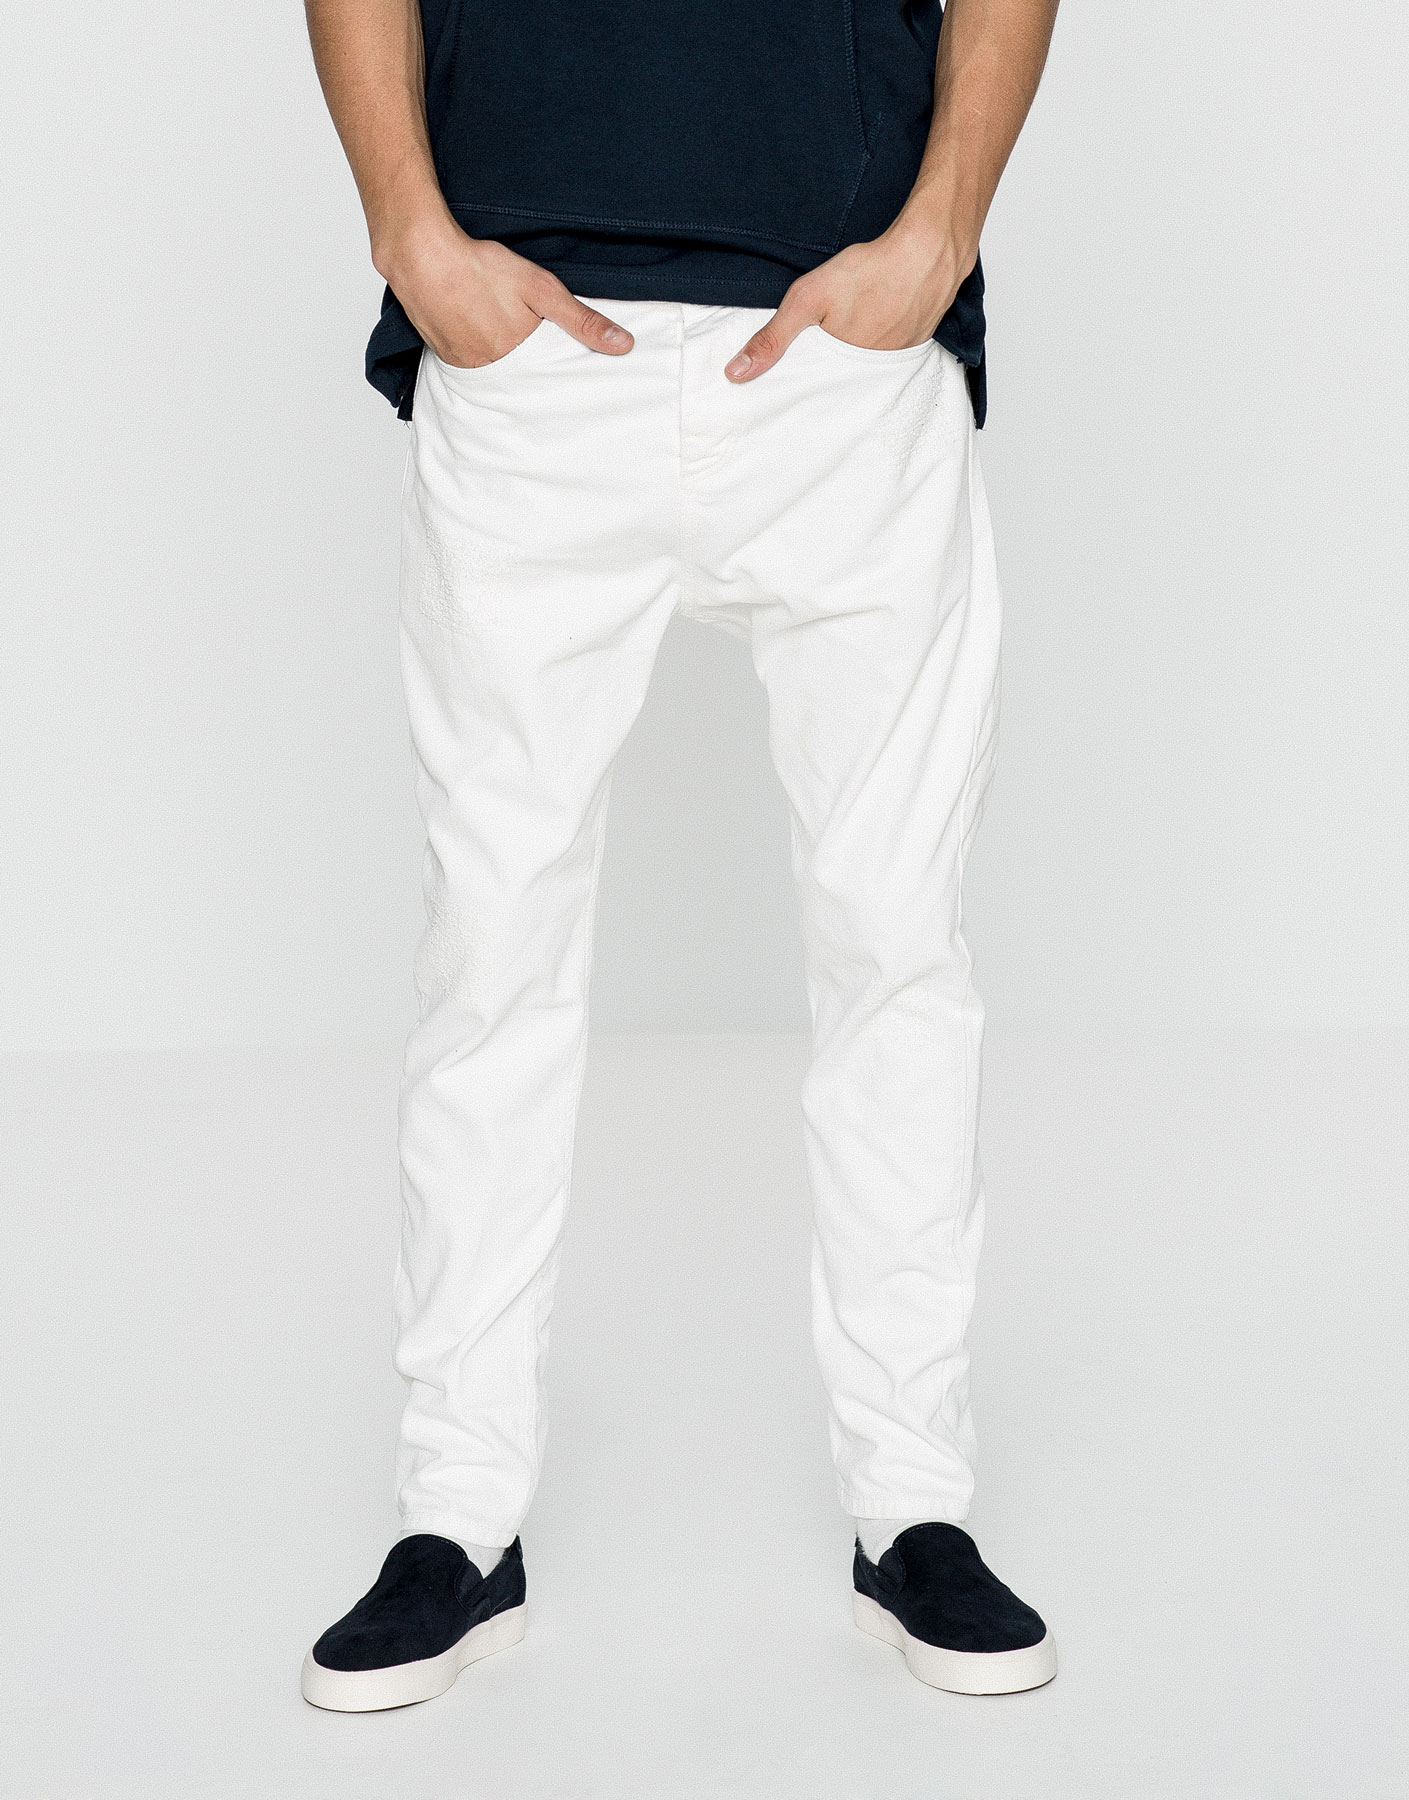 White baggy jeans with rips